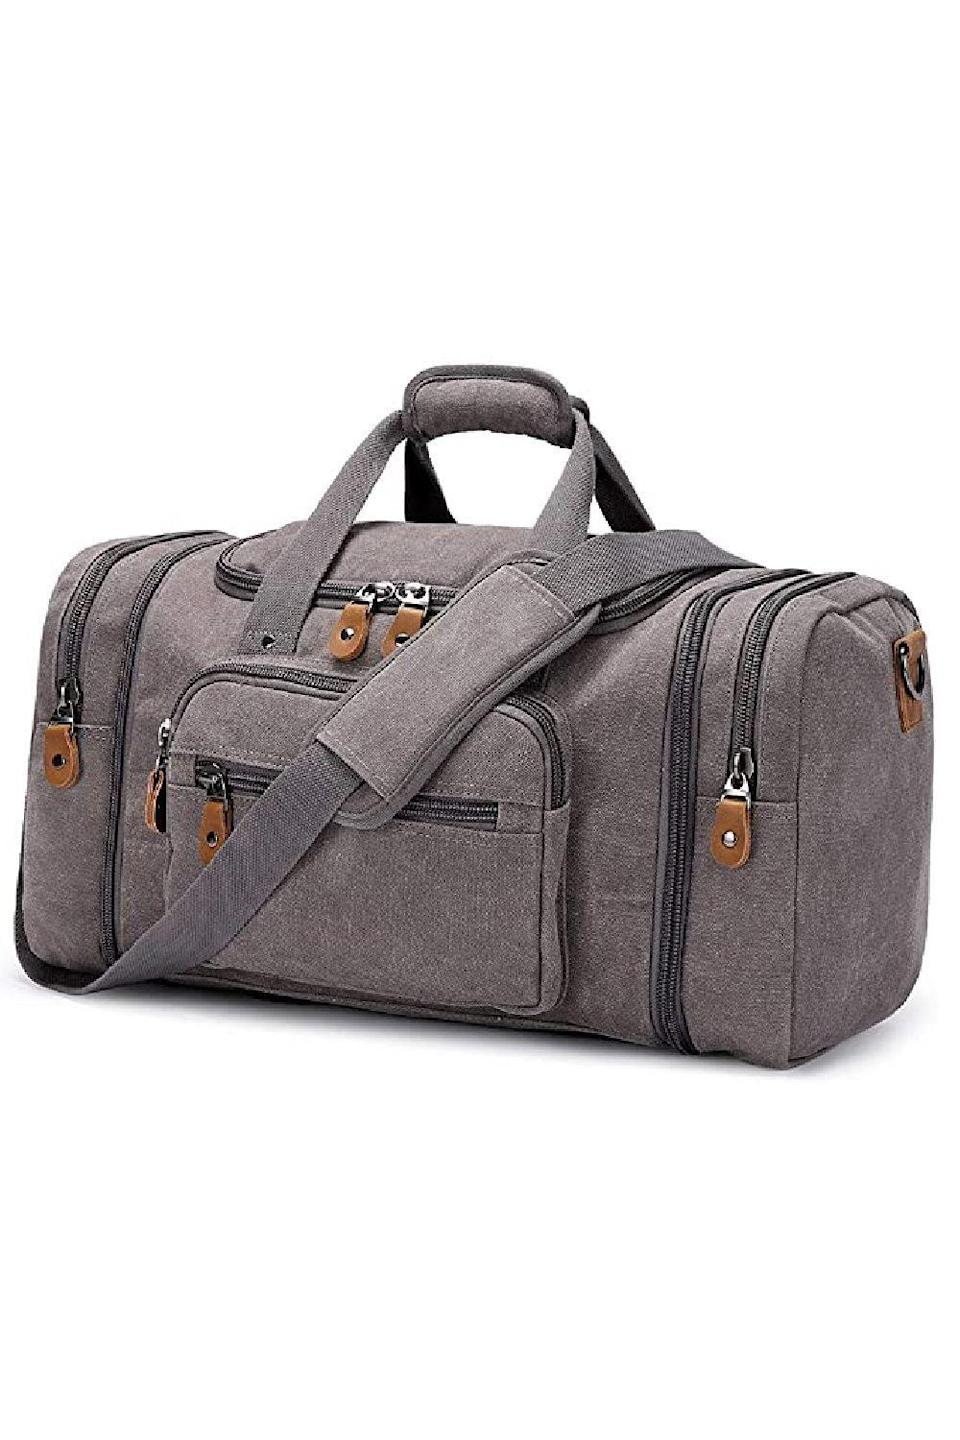 """<p><strong>Plambag</strong></p><p>amazon.com</p><p><strong>$38.99</strong></p><p><a href=""""https://www.amazon.com/dp/B01EWPIOEM?tag=syn-yahoo-20&ascsubtag=%5Bartid%7C10049.g.5199%5Bsrc%7Cyahoo-us"""" rel=""""nofollow noopener"""" target=""""_blank"""" data-ylk=""""slk:Shop Now"""" class=""""link rapid-noclick-resp"""">Shop Now</a></p><p>This extendable duffel bag is super roomy inside but still has a compact silhouette. It's got over 7k positive reviews and once the lucky recipient gets a feel for how functional it is, they'll understand why.</p>"""